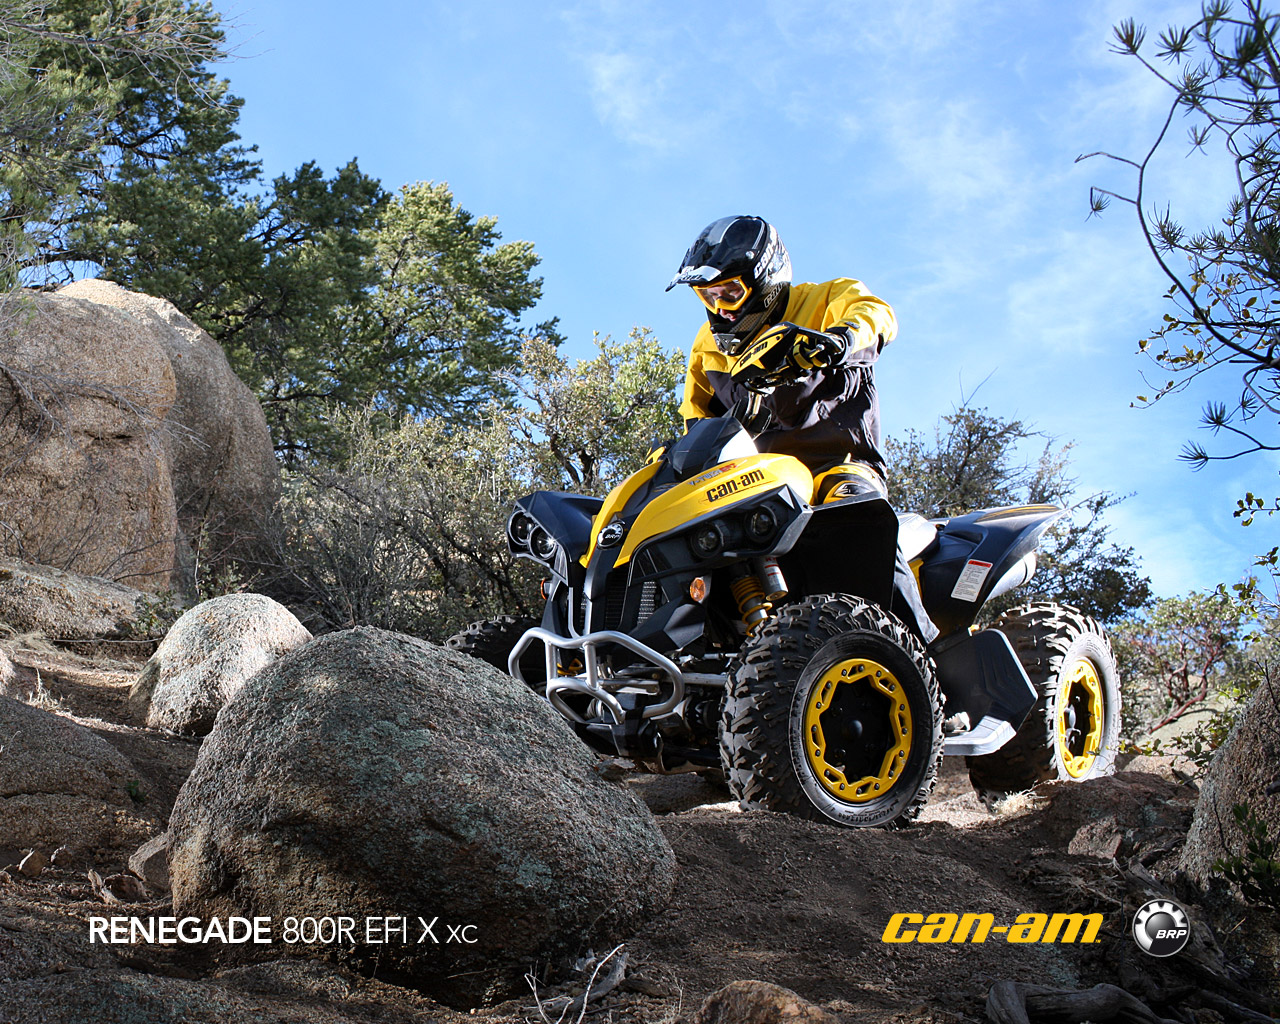 CAN-AM BOMBARDIER Renegade 800 R X xc 2011 photo 5